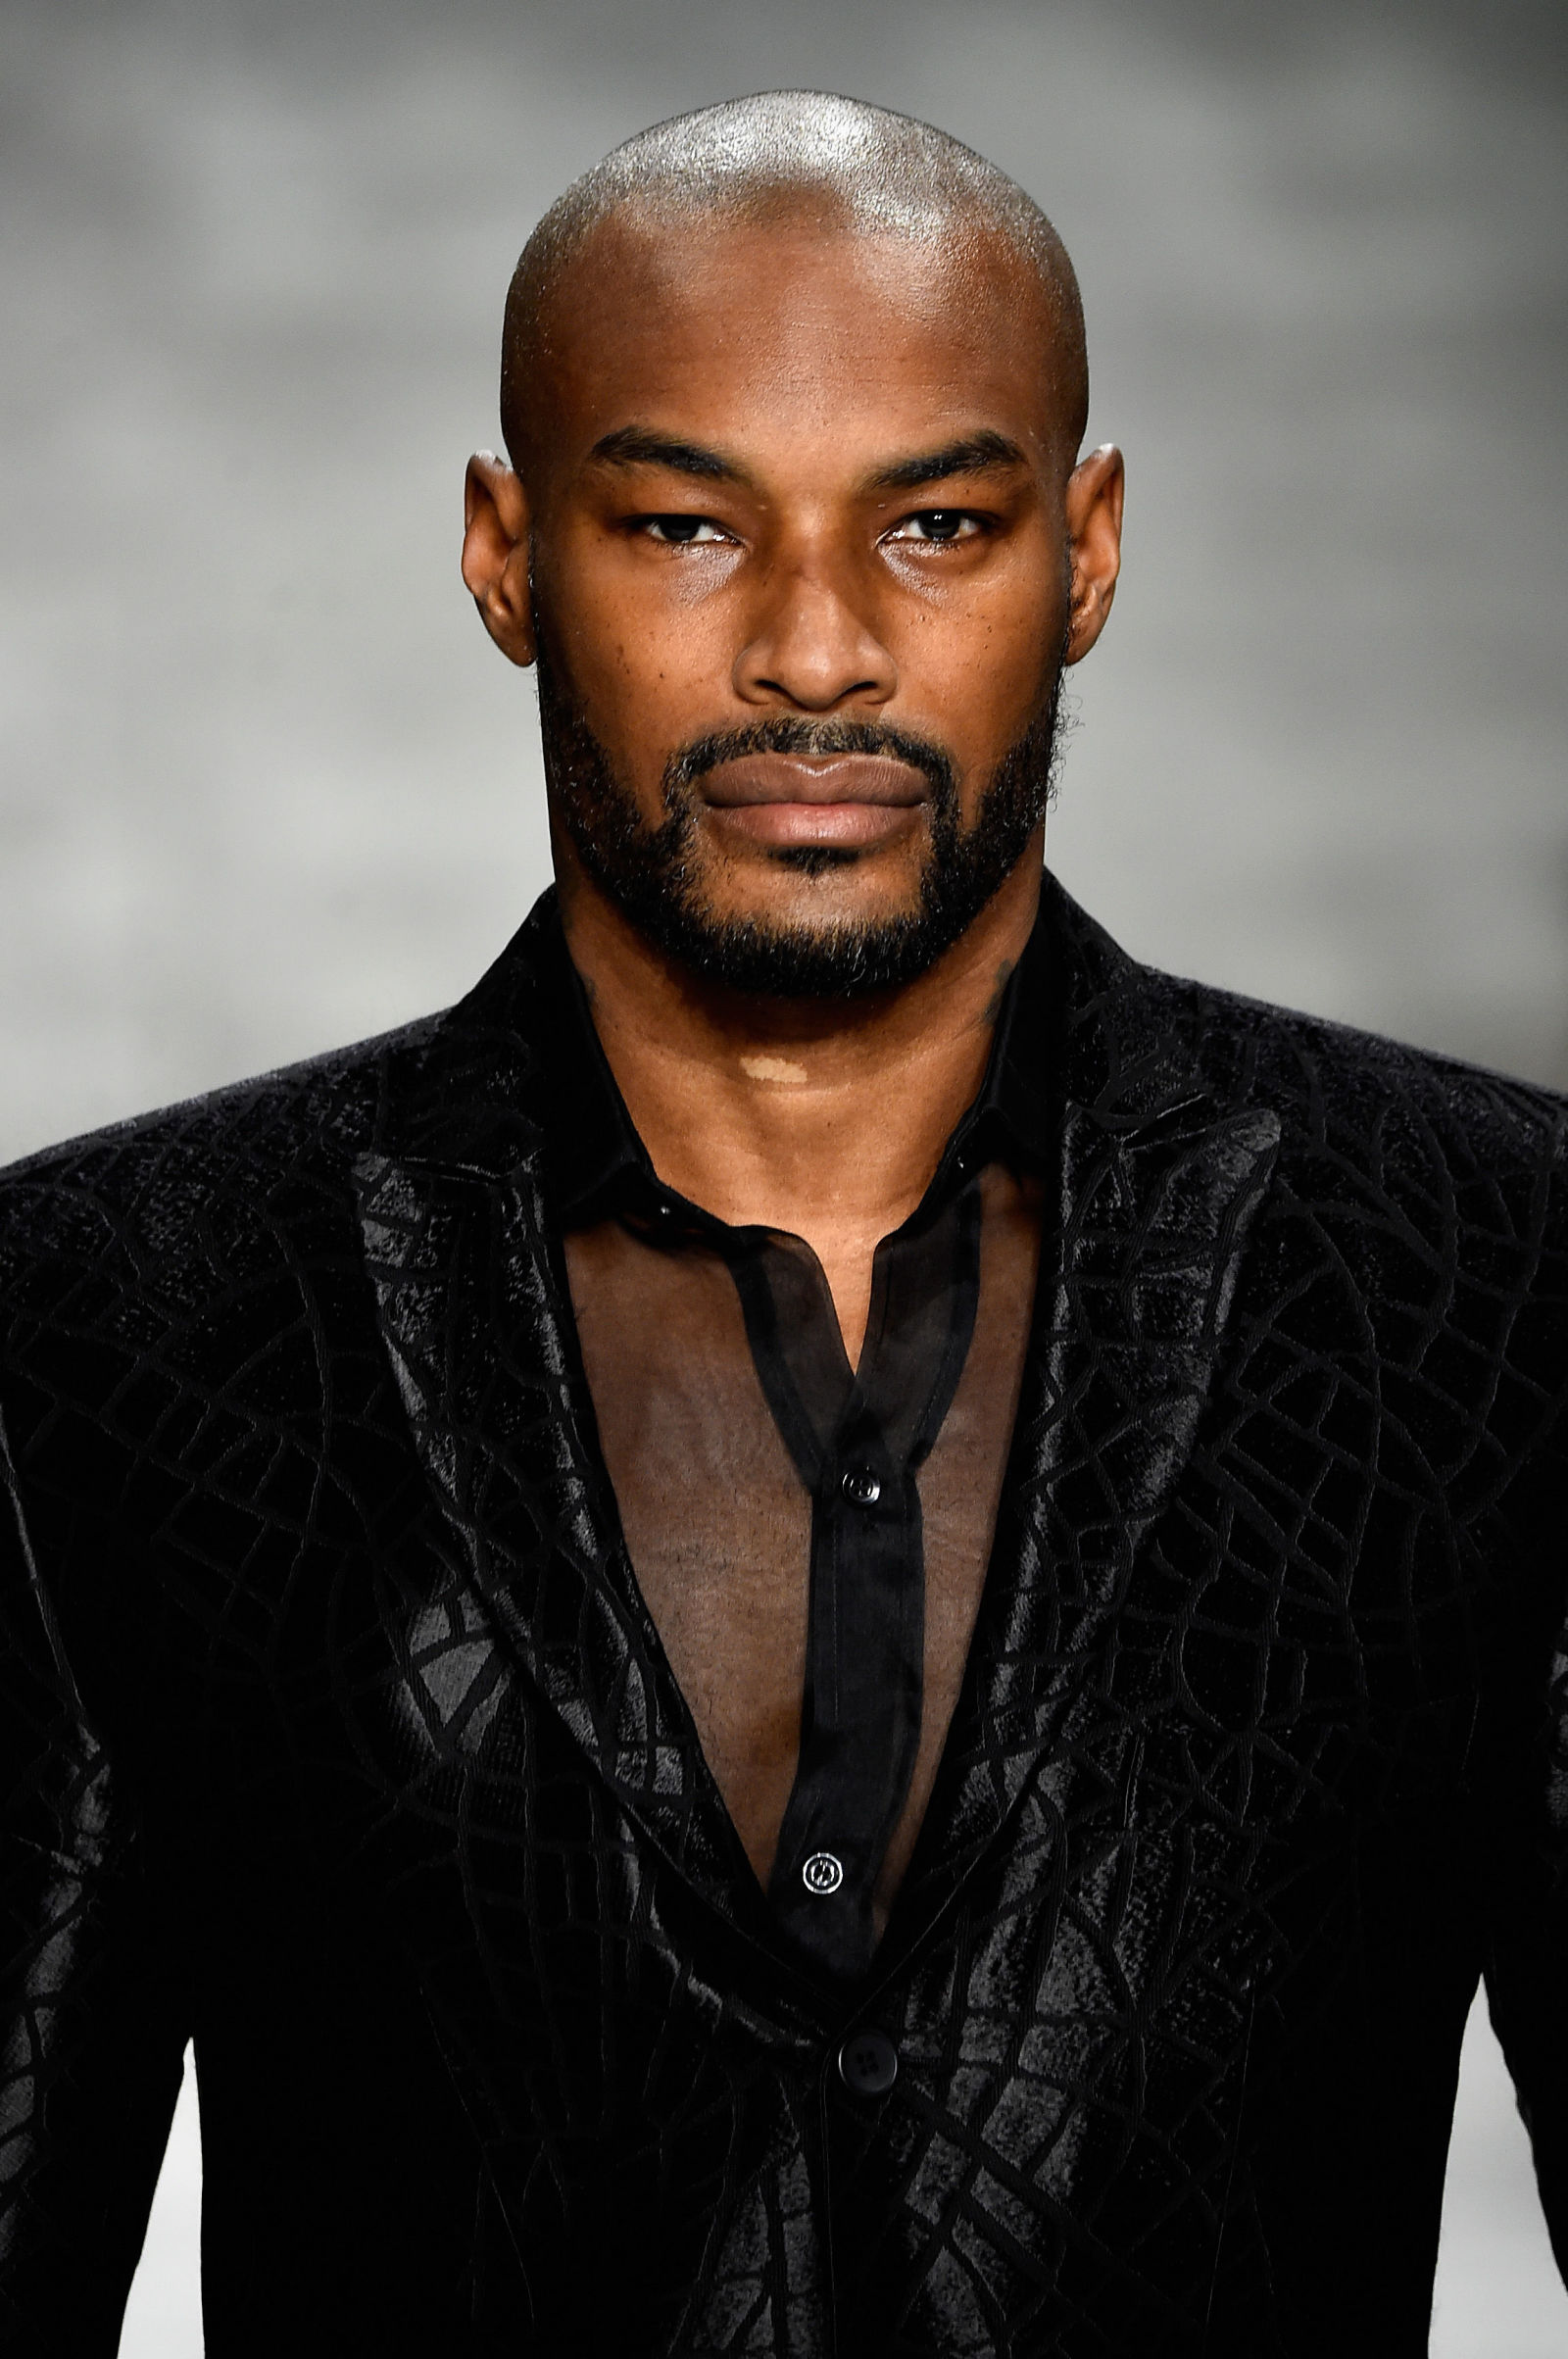 Tyson Beckford on Modeling, Racism in Fashion - Tyson ...